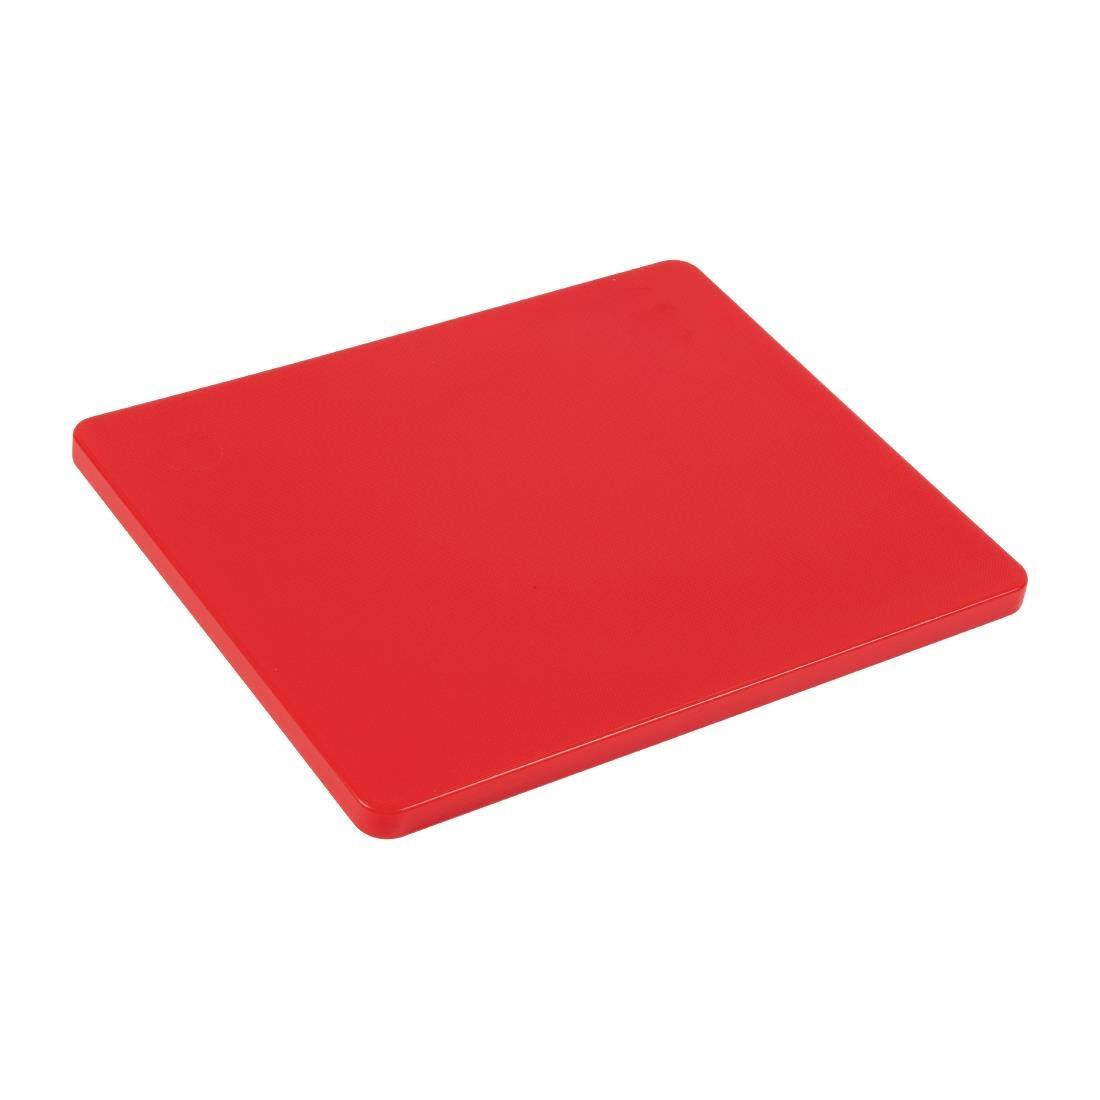 GL289 - Hygiplas Gastronorm 1/2 Red Chopping Board- Each - GL289